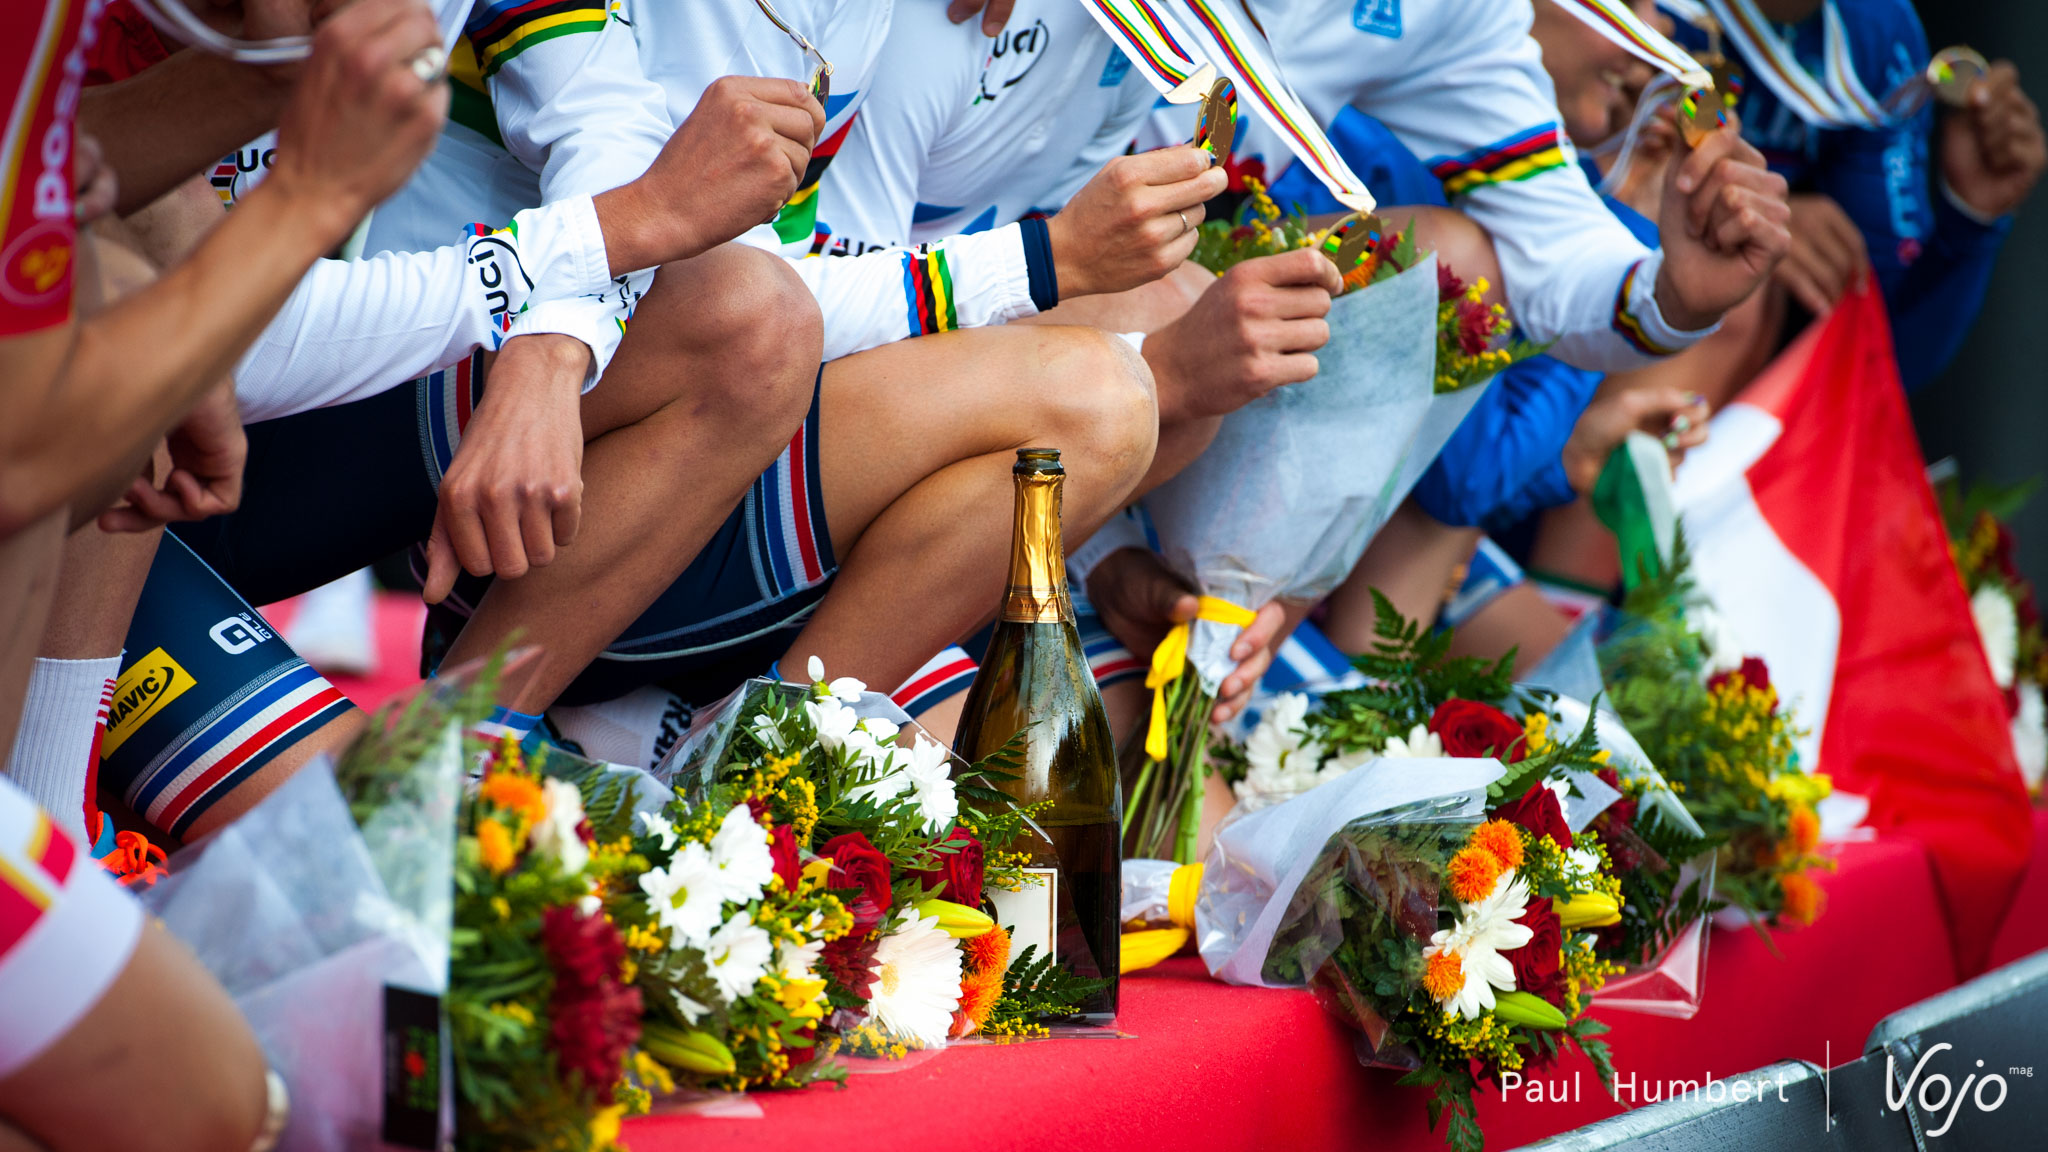 Worldchamps-2015-vojo-paul-humbert-xc-relai-25